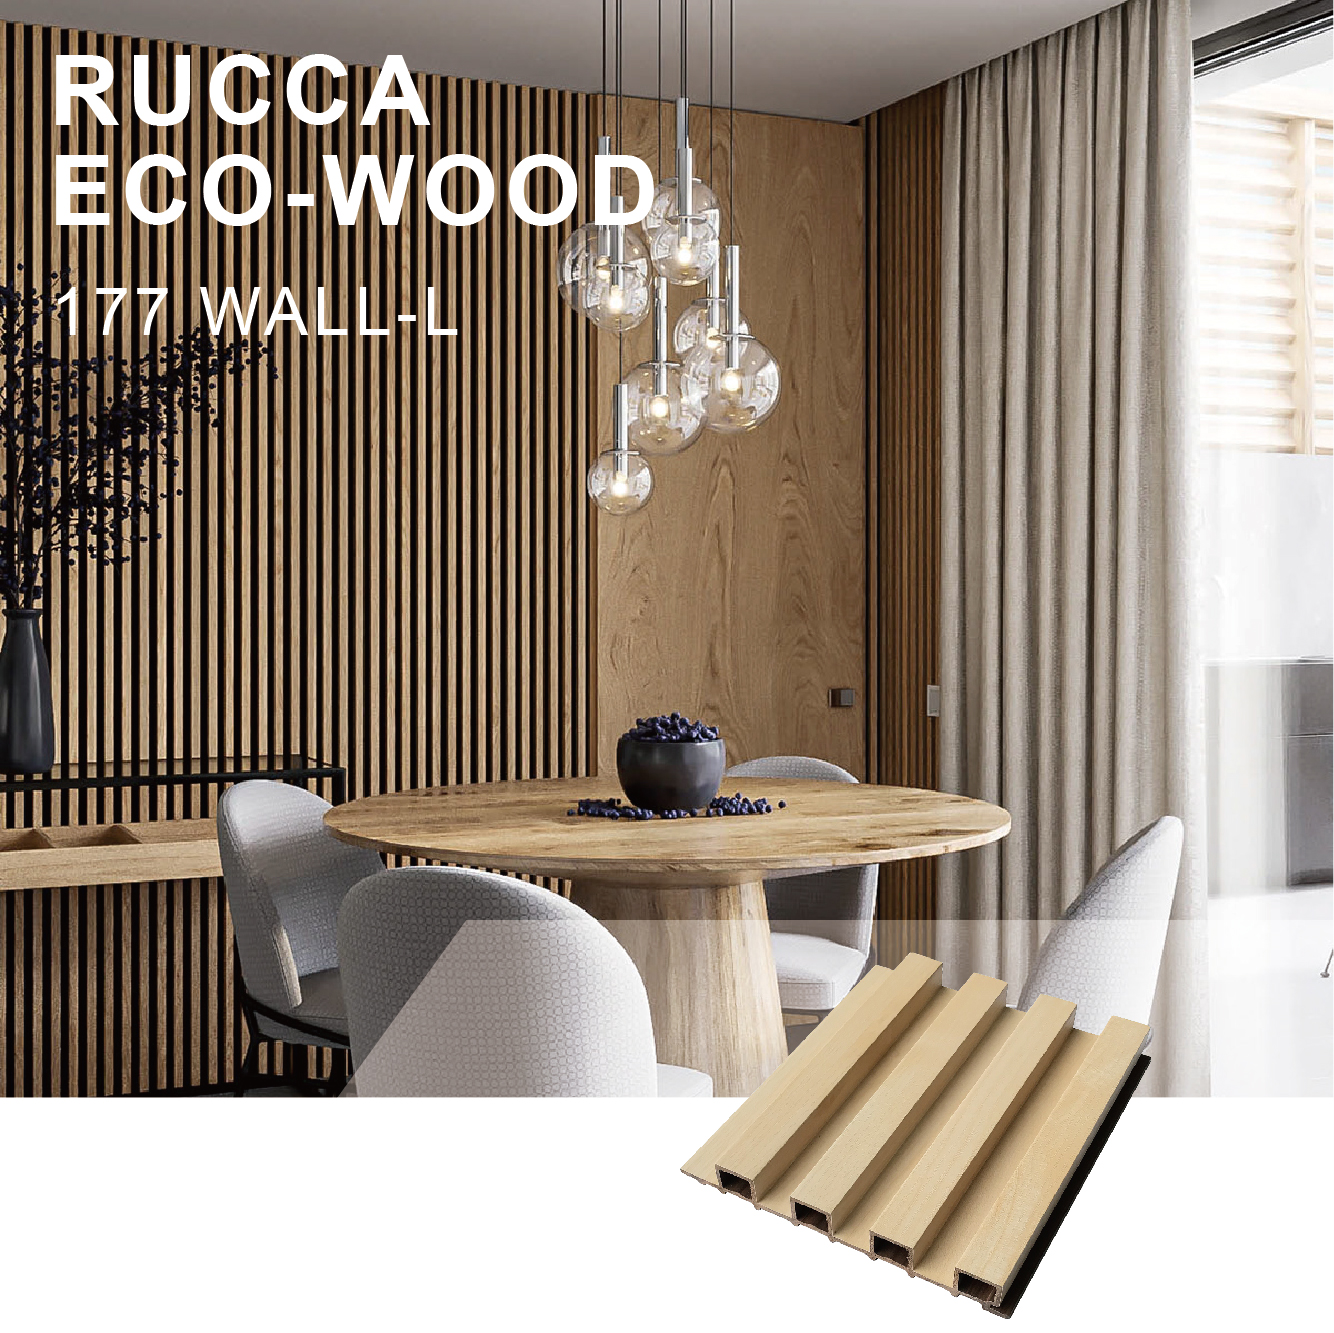 Rucca Wood Plastic Composite Wall Panels Interior Decoration For Prefab Homes 177 21 5mm Building Materials Buy Interior Wall Panel Prefab Homes Bathroom Accessories Product On Alibaba Com